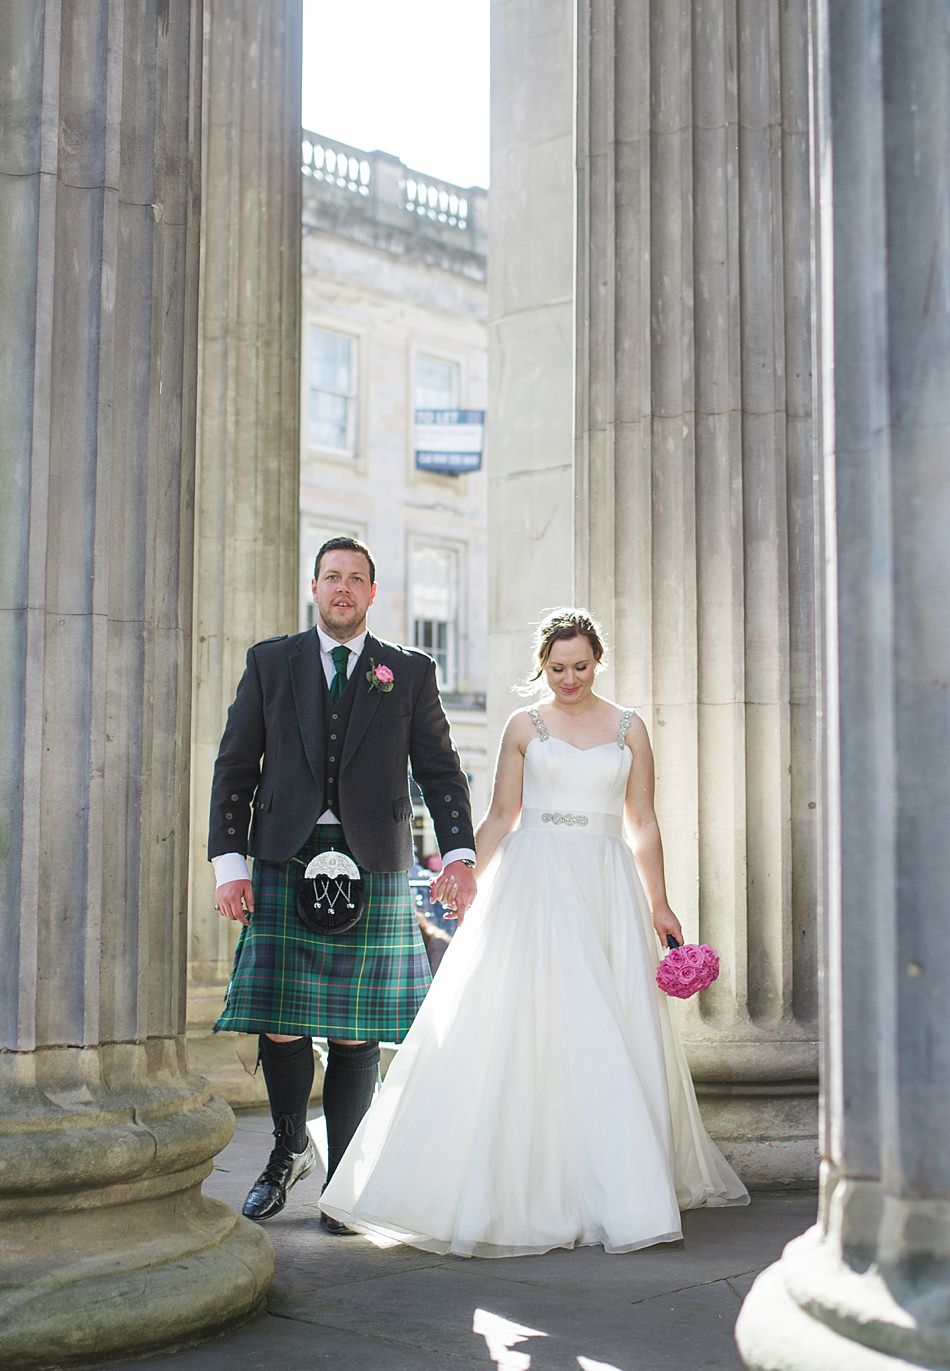 wedding 29 royal exchange square glasgow 8-8.jpg